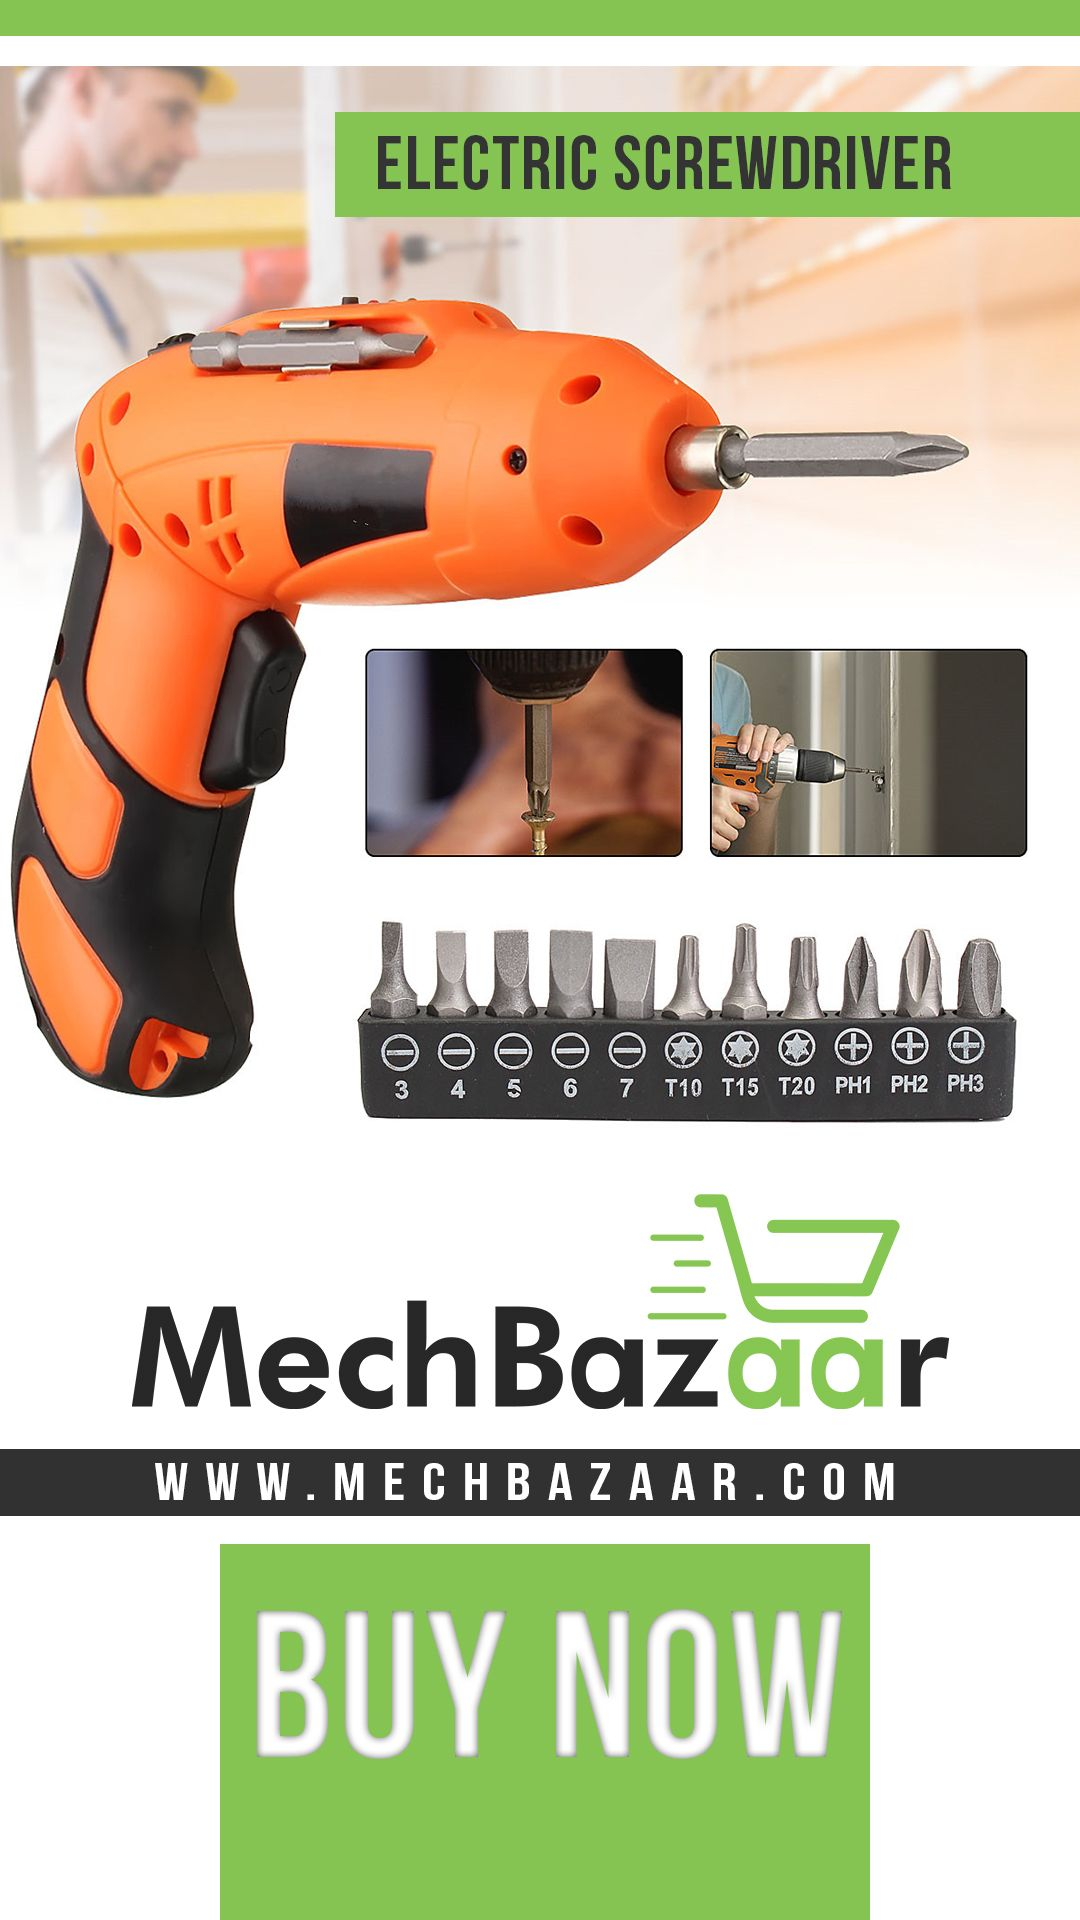 One Tool For All Screws Drive Even The Biggest Screws Into Wood And Walls Without Drilling Pilot Hole Tools Drill Electric Screwdriver